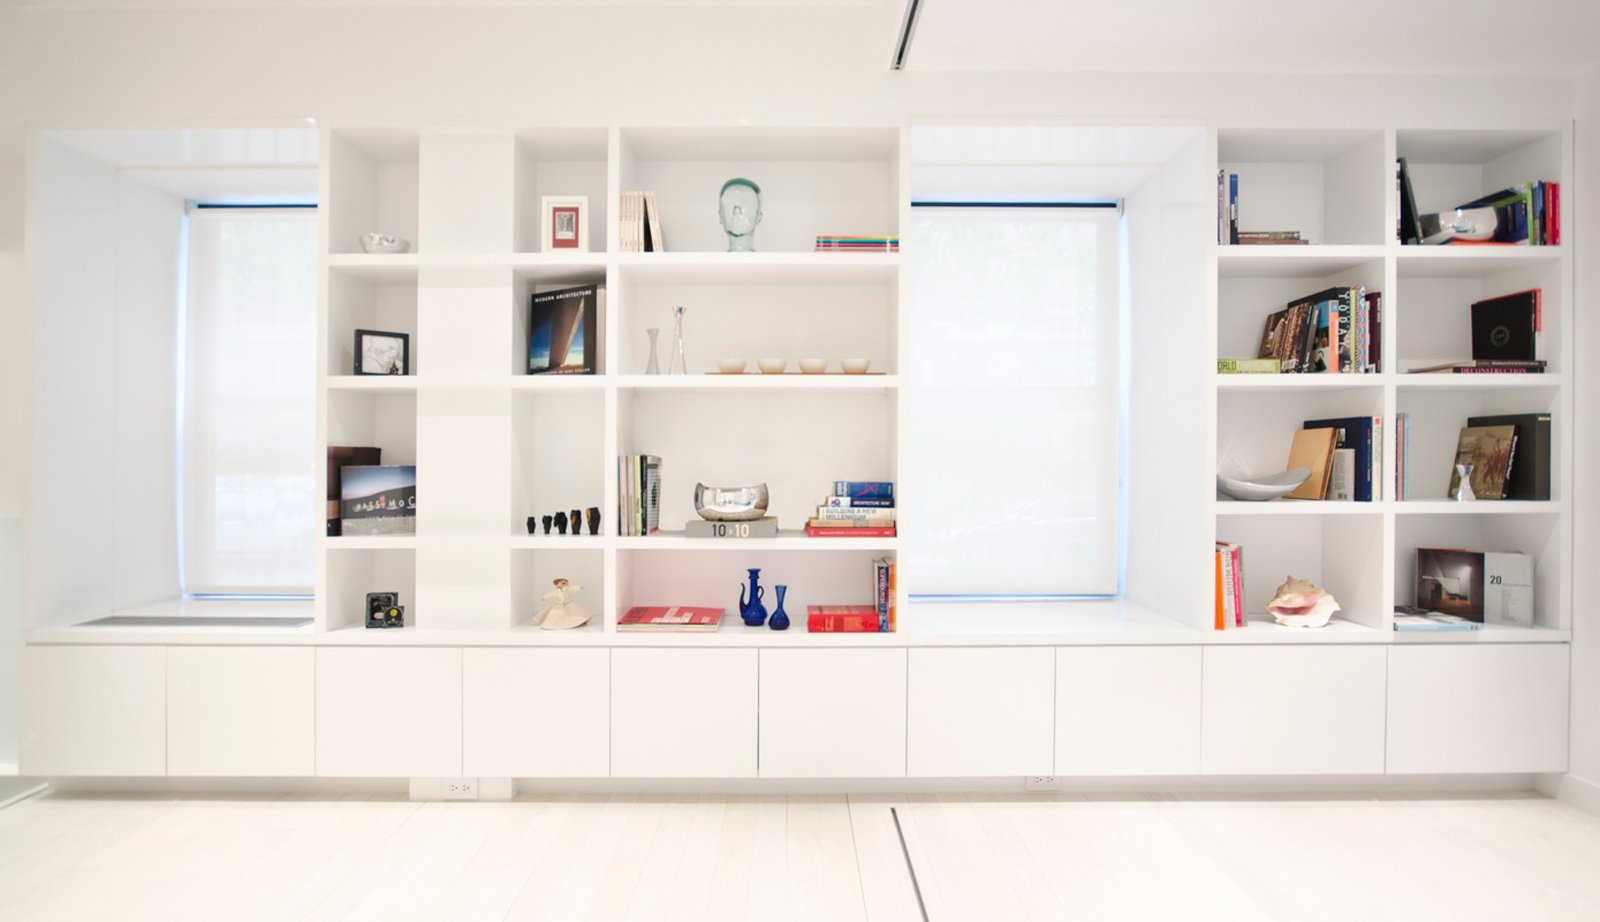 Now, cubbies are built into the wall to provide storage.  University Place Apartment by Diana Budds